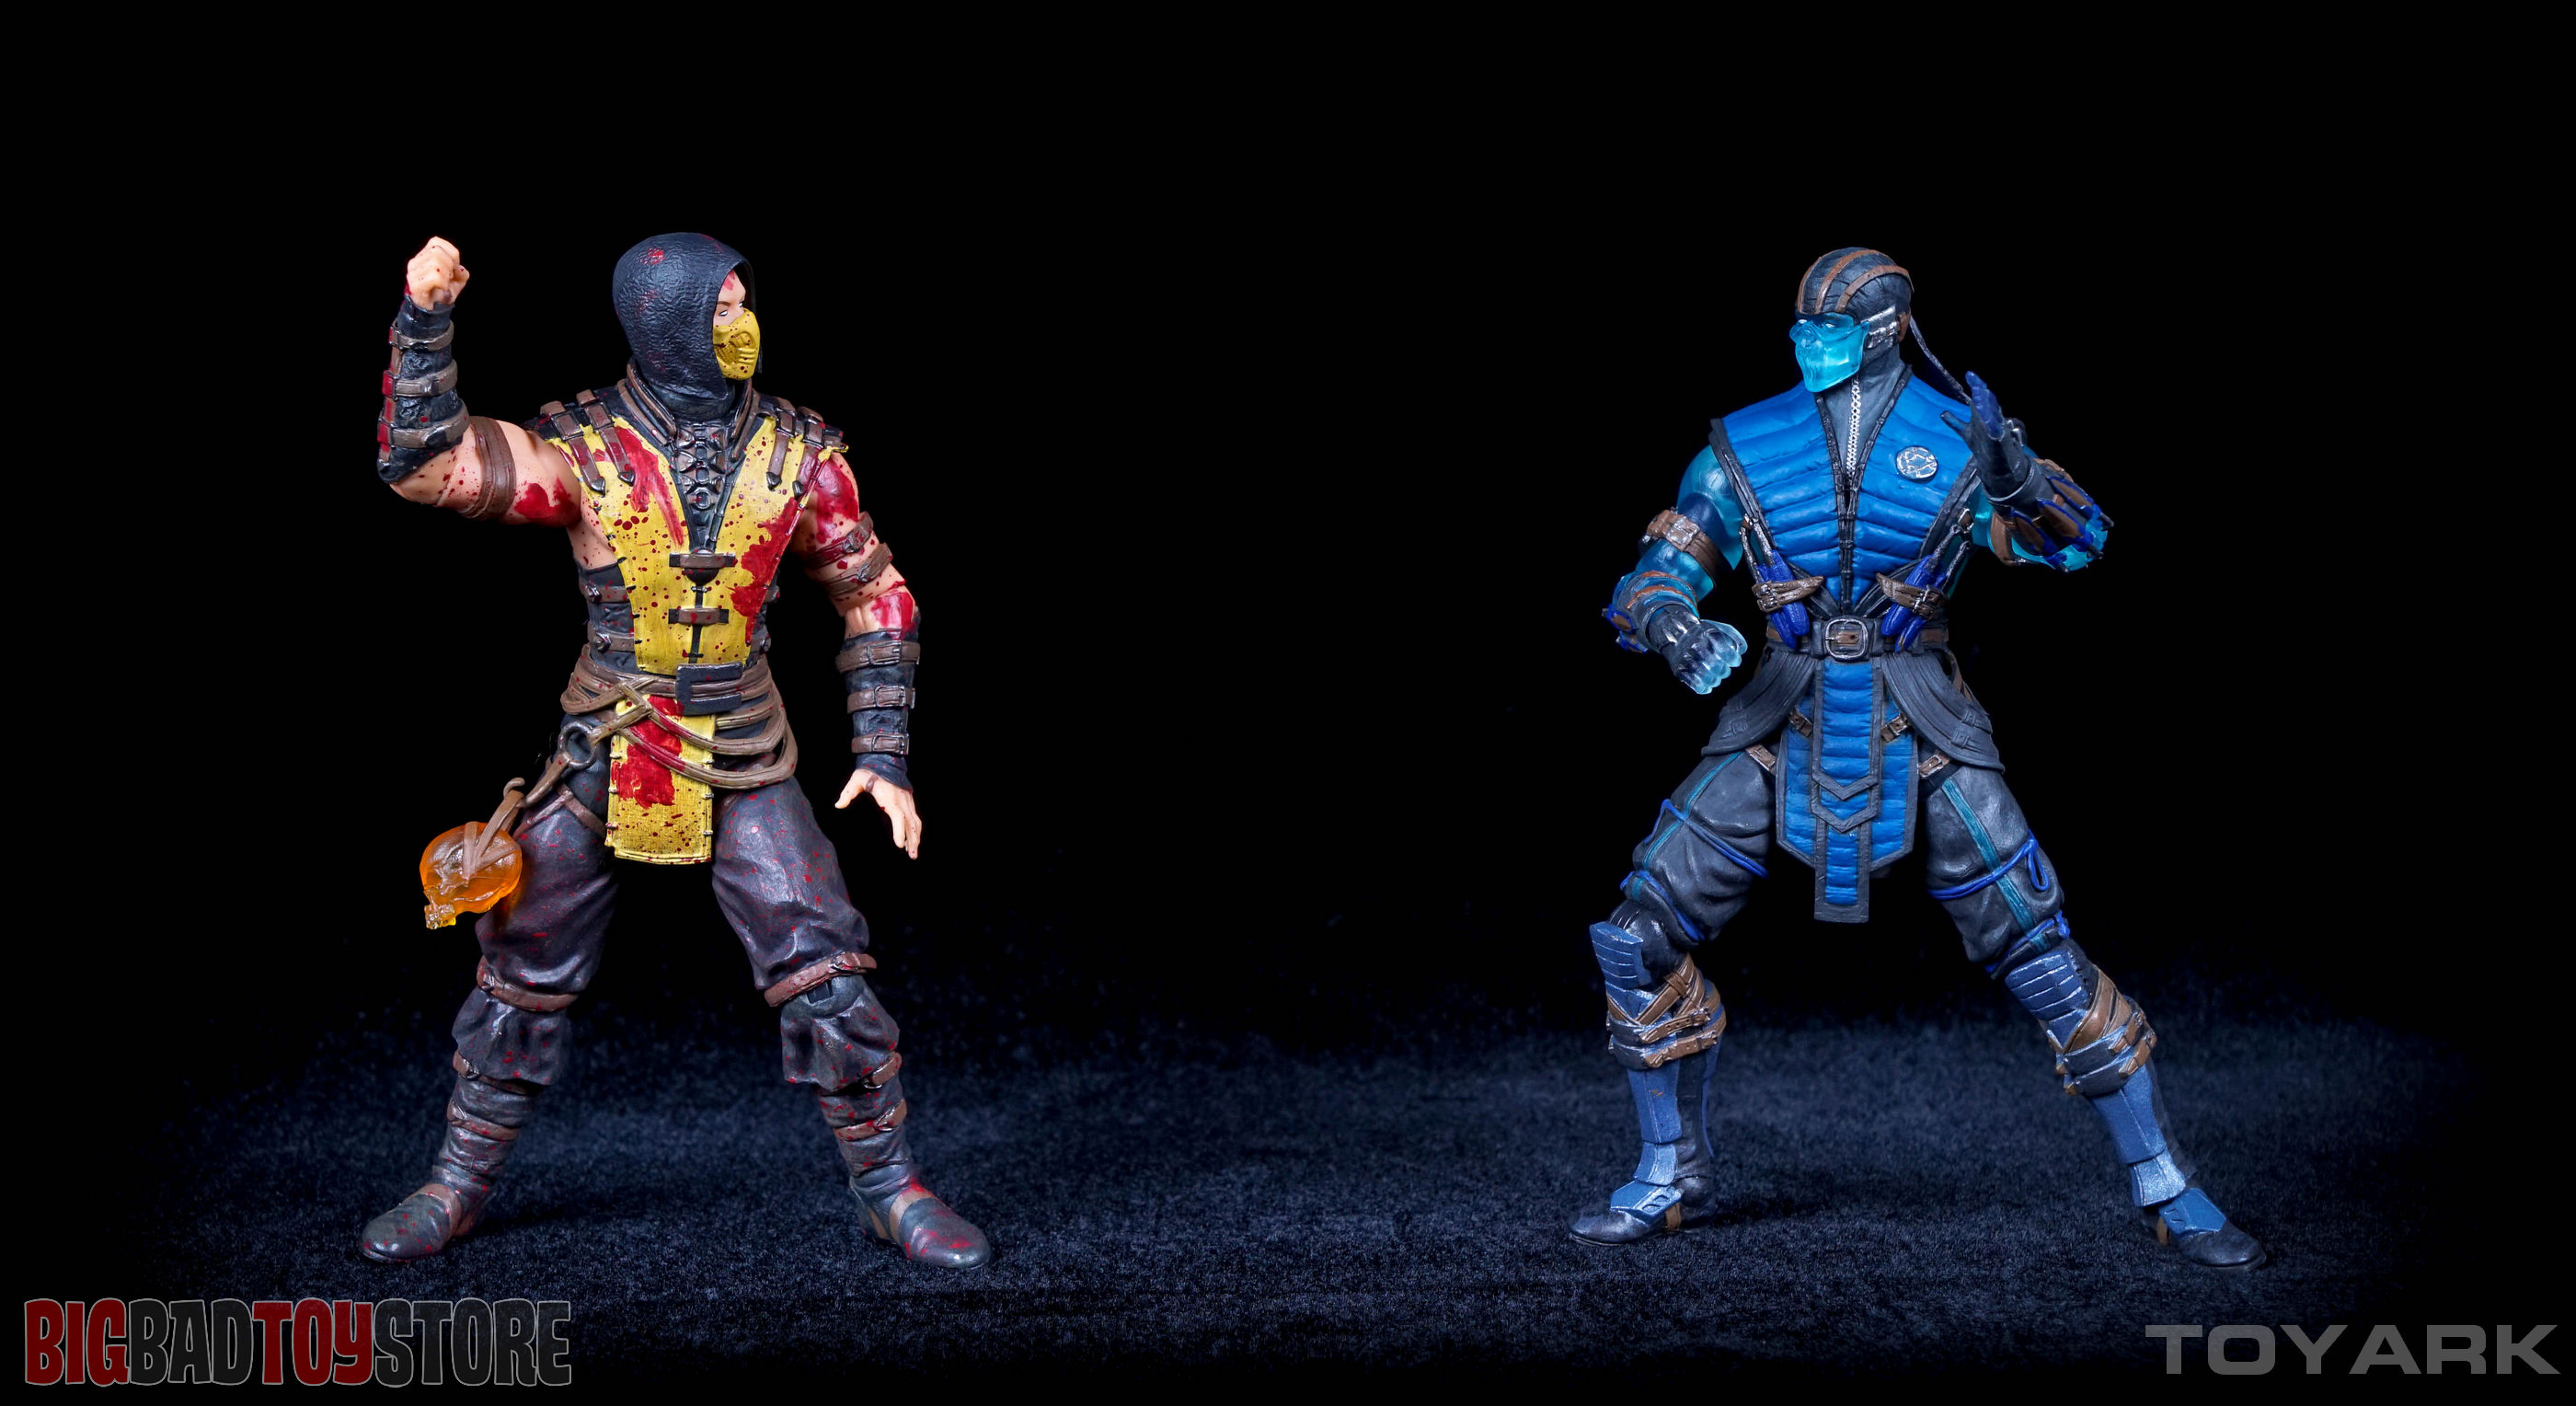 http://news.toyark.com/wp-content/uploads/sites/4/2015/10/Mezco-PX-Mortal-Kombat-X-041.jpg